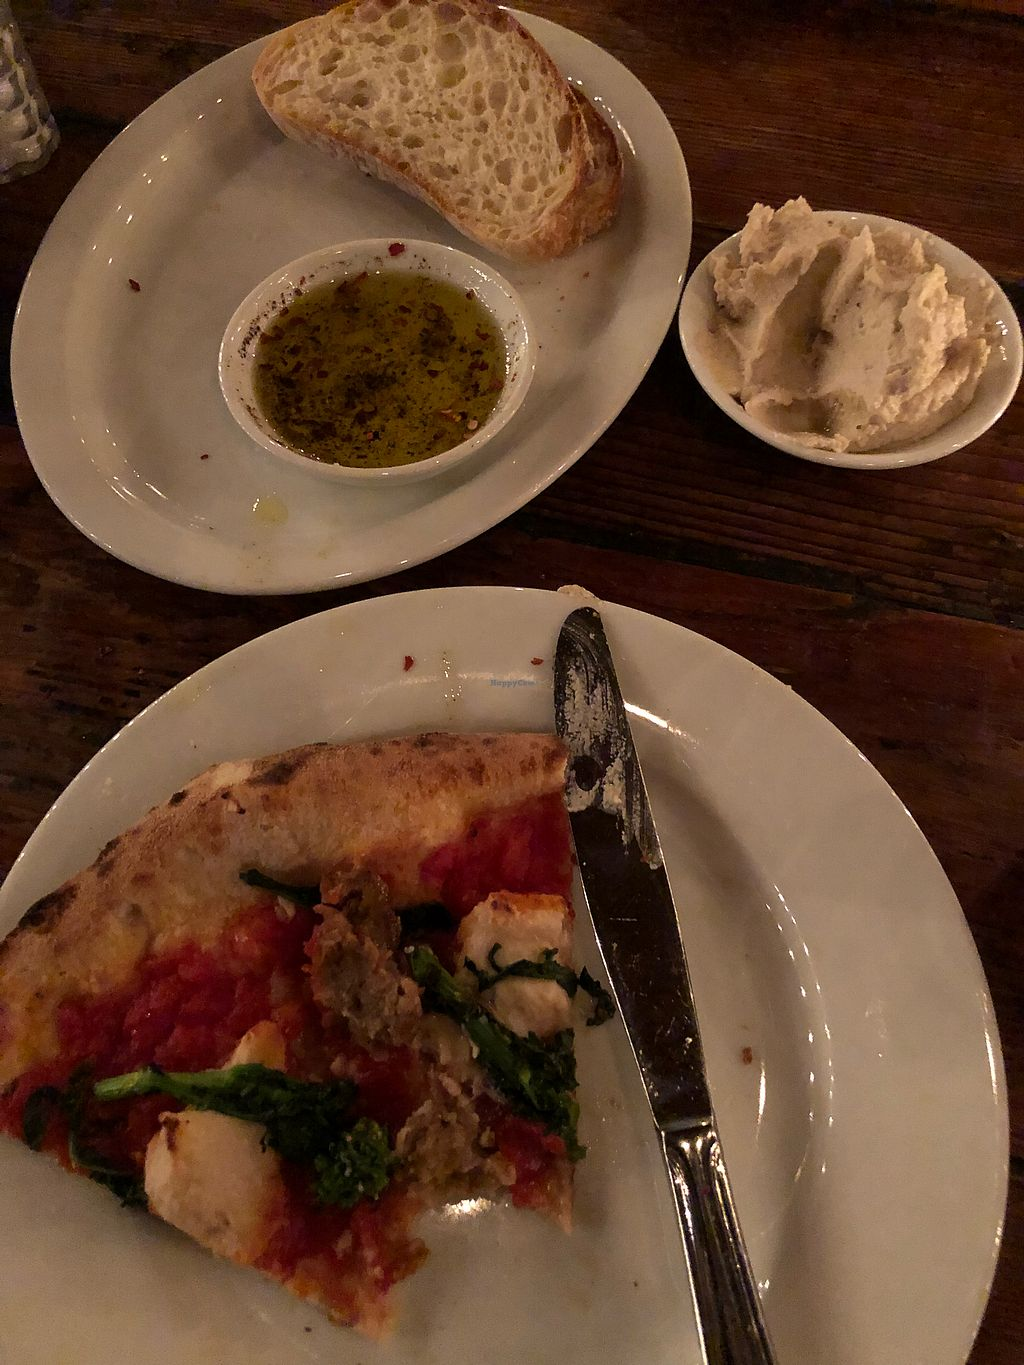 """Photo of Porta  by <a href=""""/members/profile/TracyV600"""">TracyV600</a> <br/>Snawzeech pizza and cashew ricotta with bread <br/> January 8, 2018  - <a href='/contact/abuse/image/32422/344512'>Report</a>"""